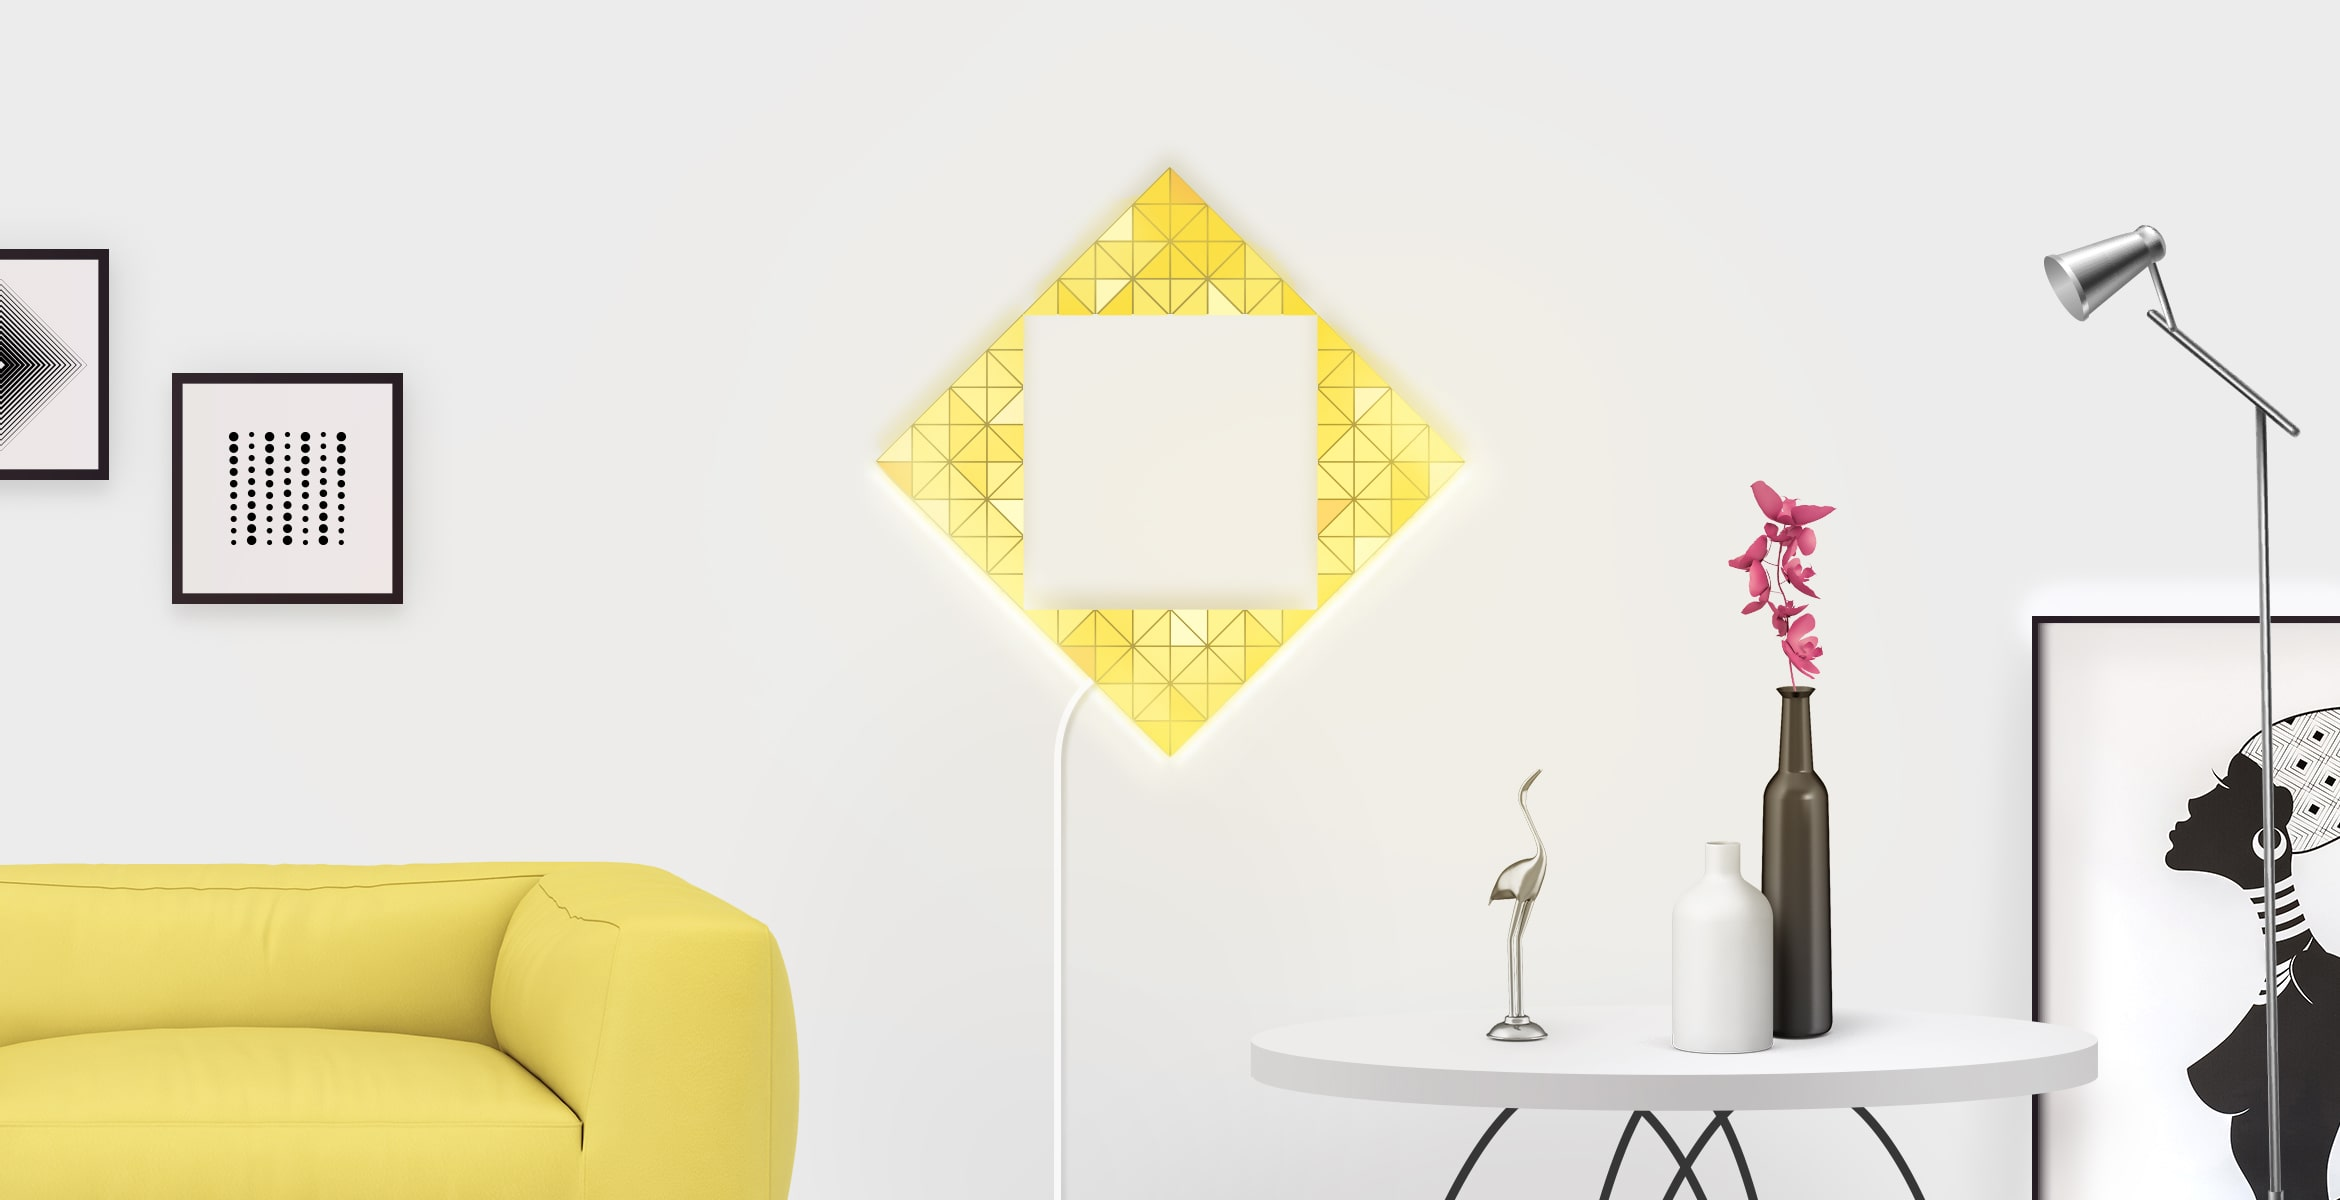 Magic portal shape in yellow colour, assembled from 4 LaMetric SKY smart light surfaces, placed in a stylish living room